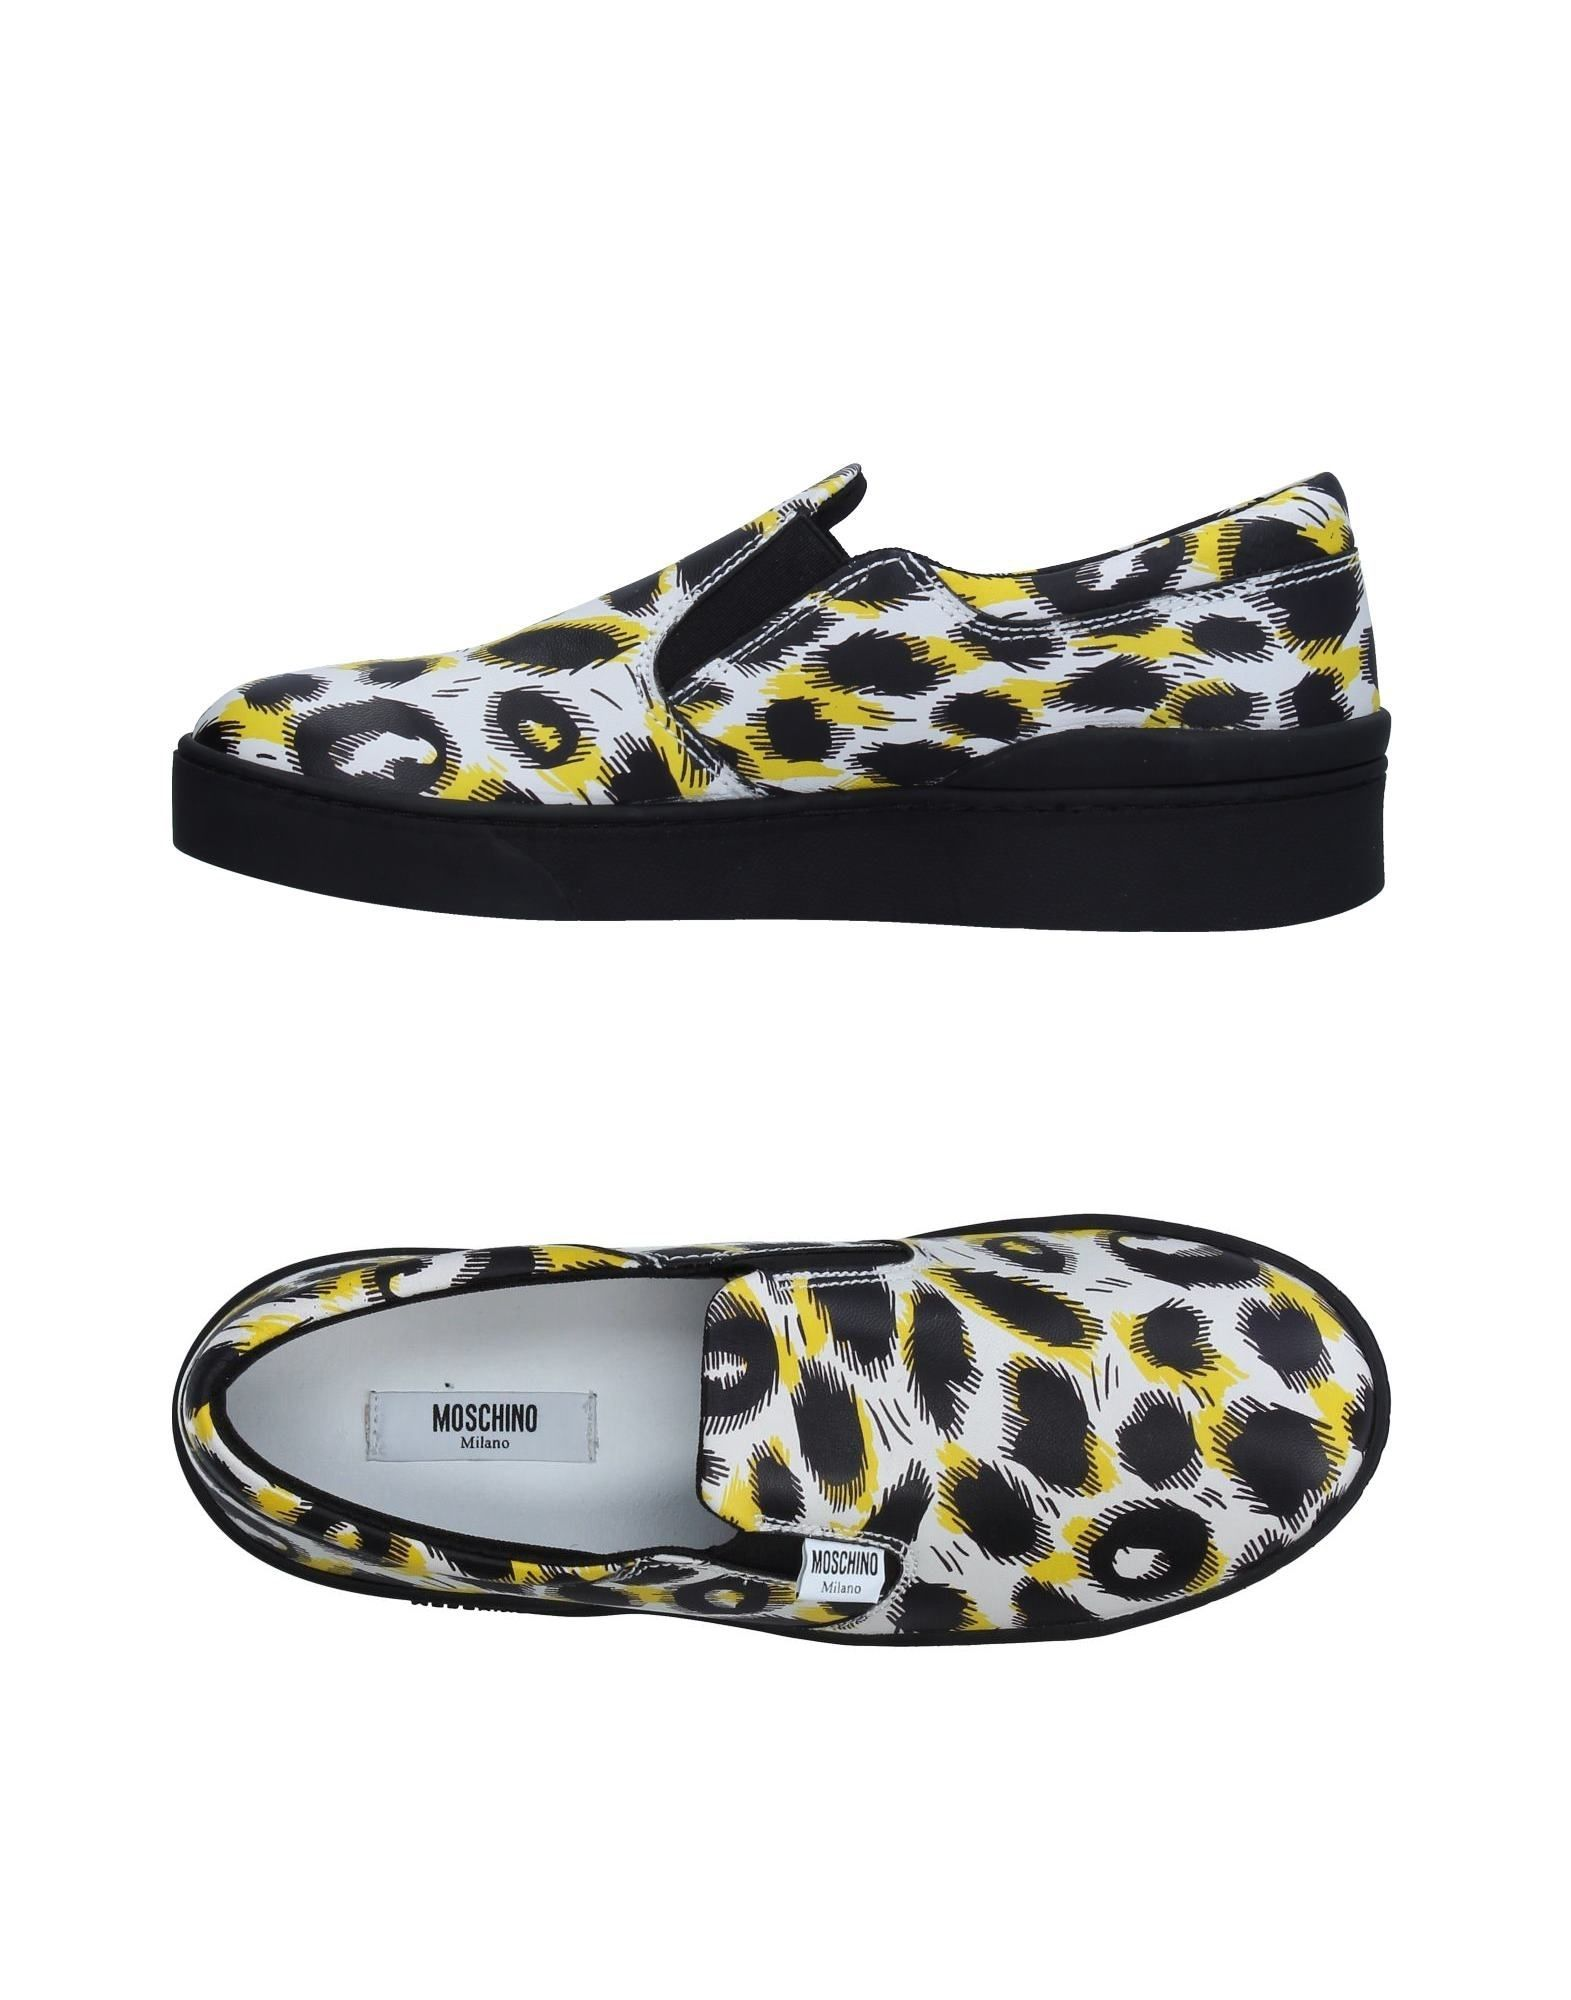 Sneakers Moschino Donna - Acquista online su